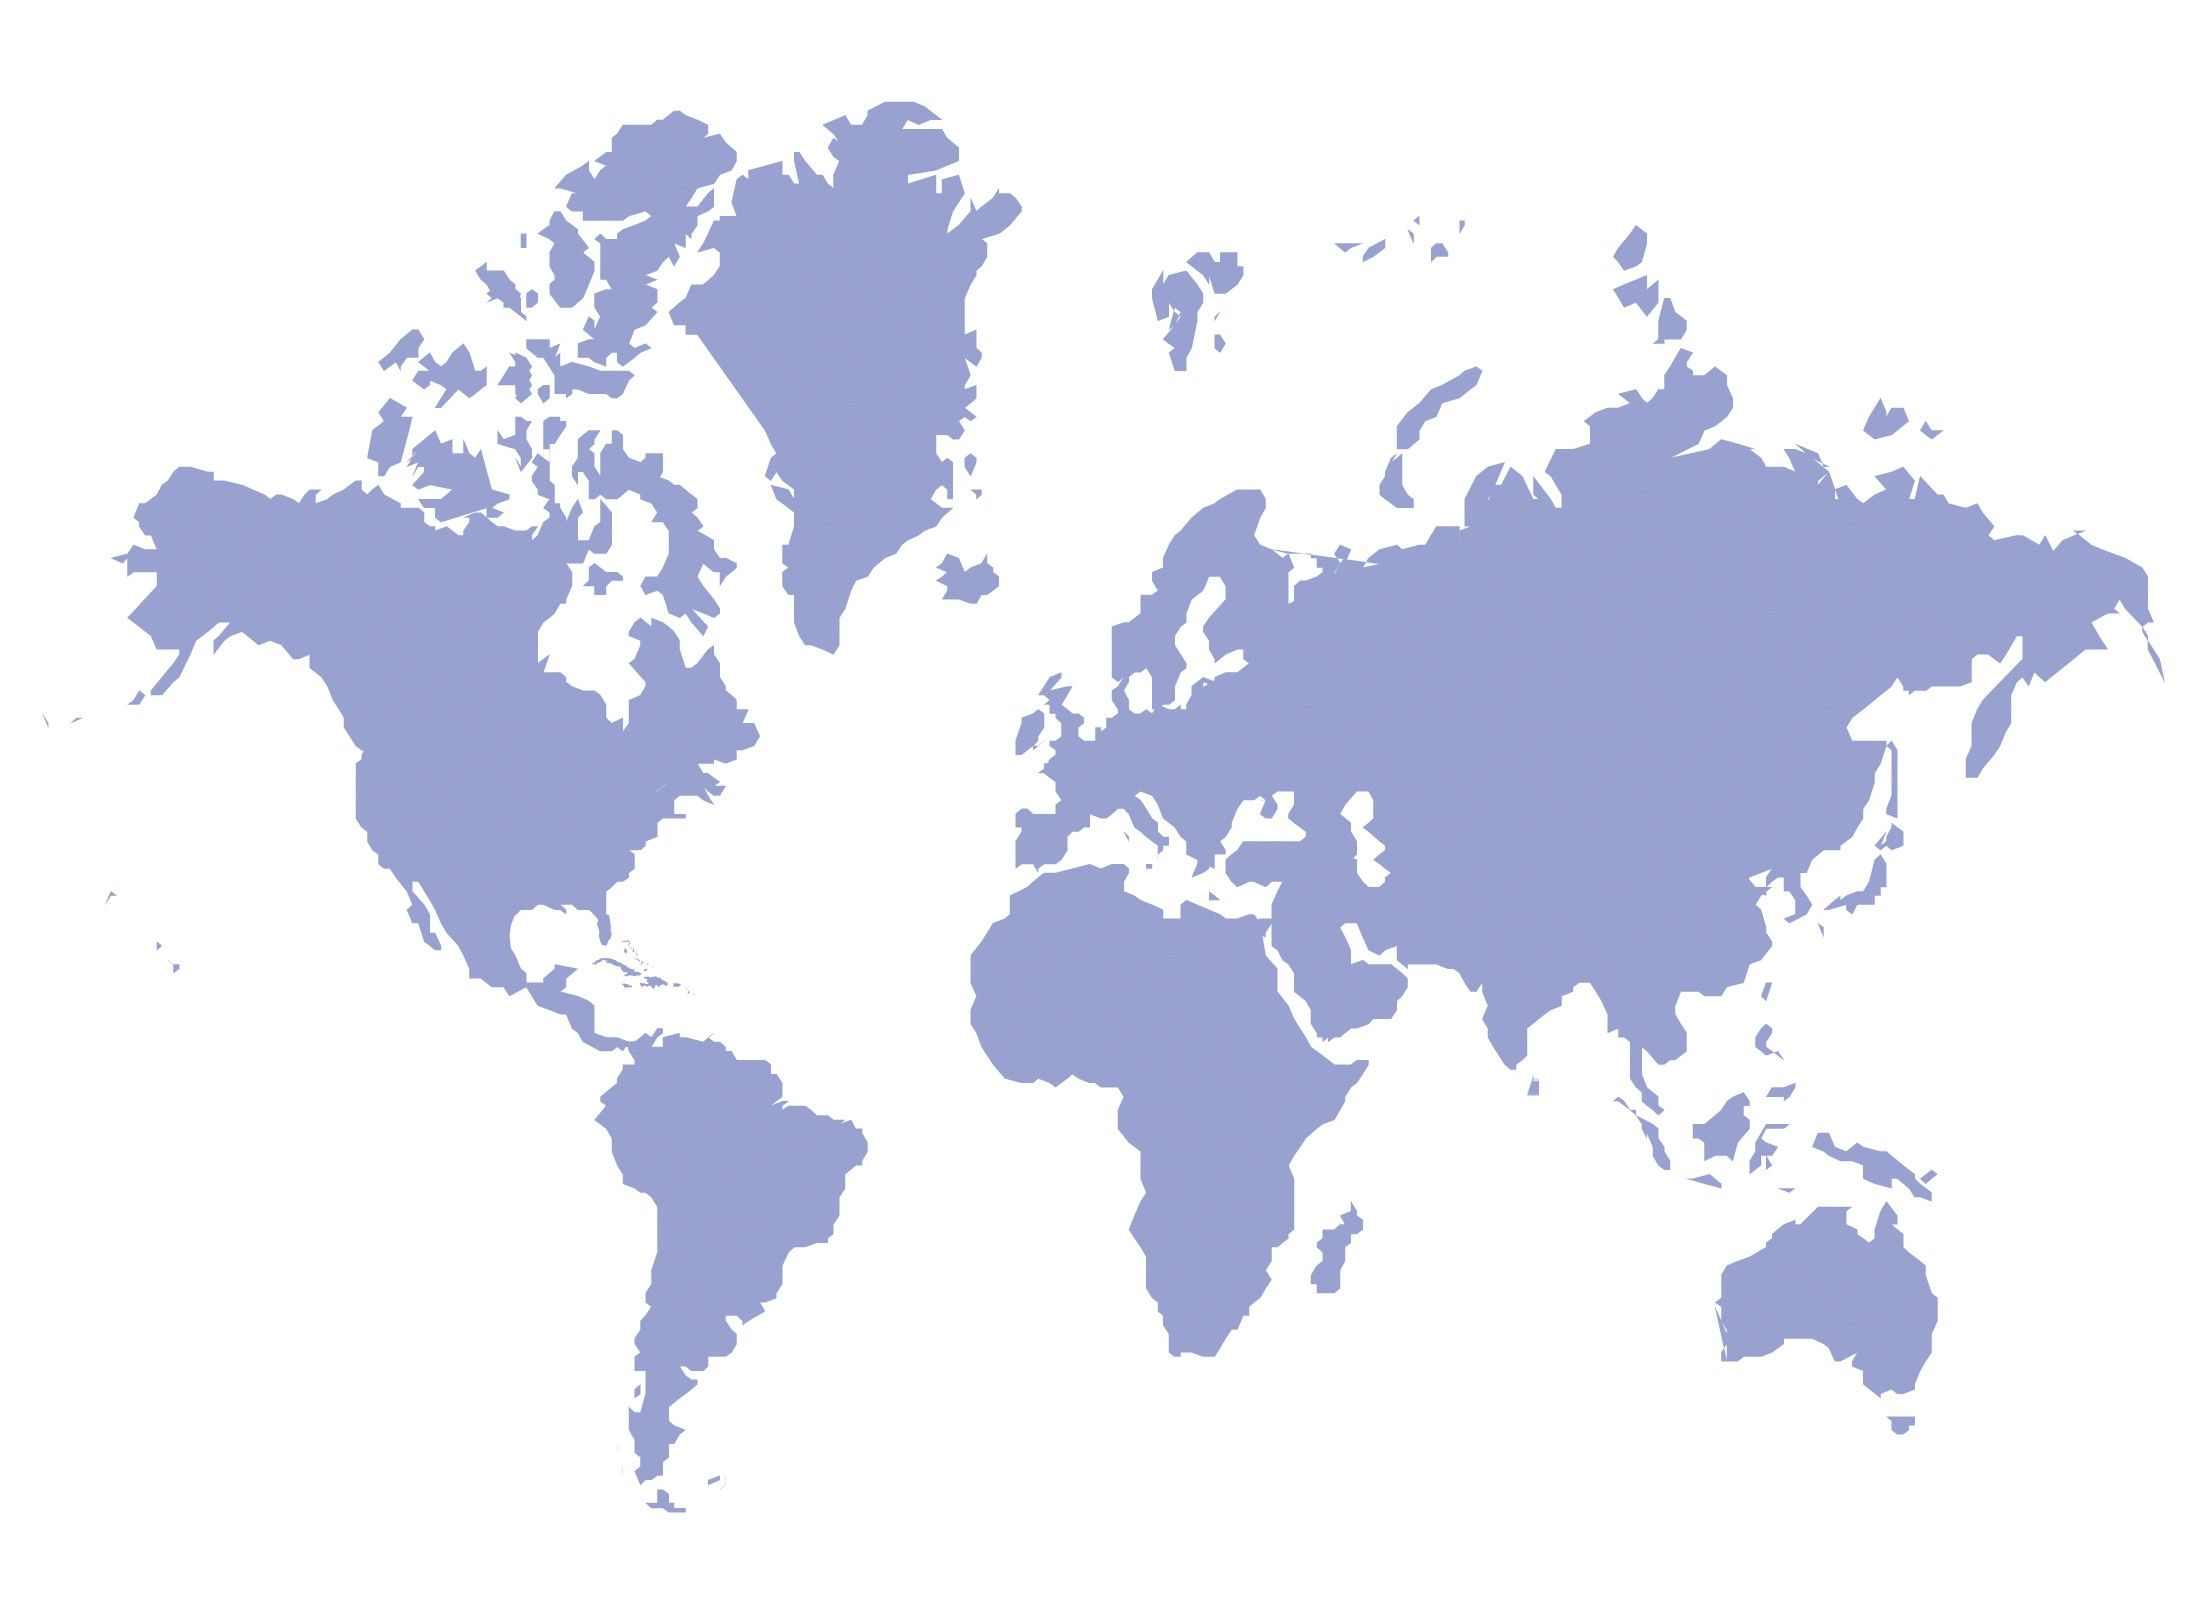 A world map in silhouette.